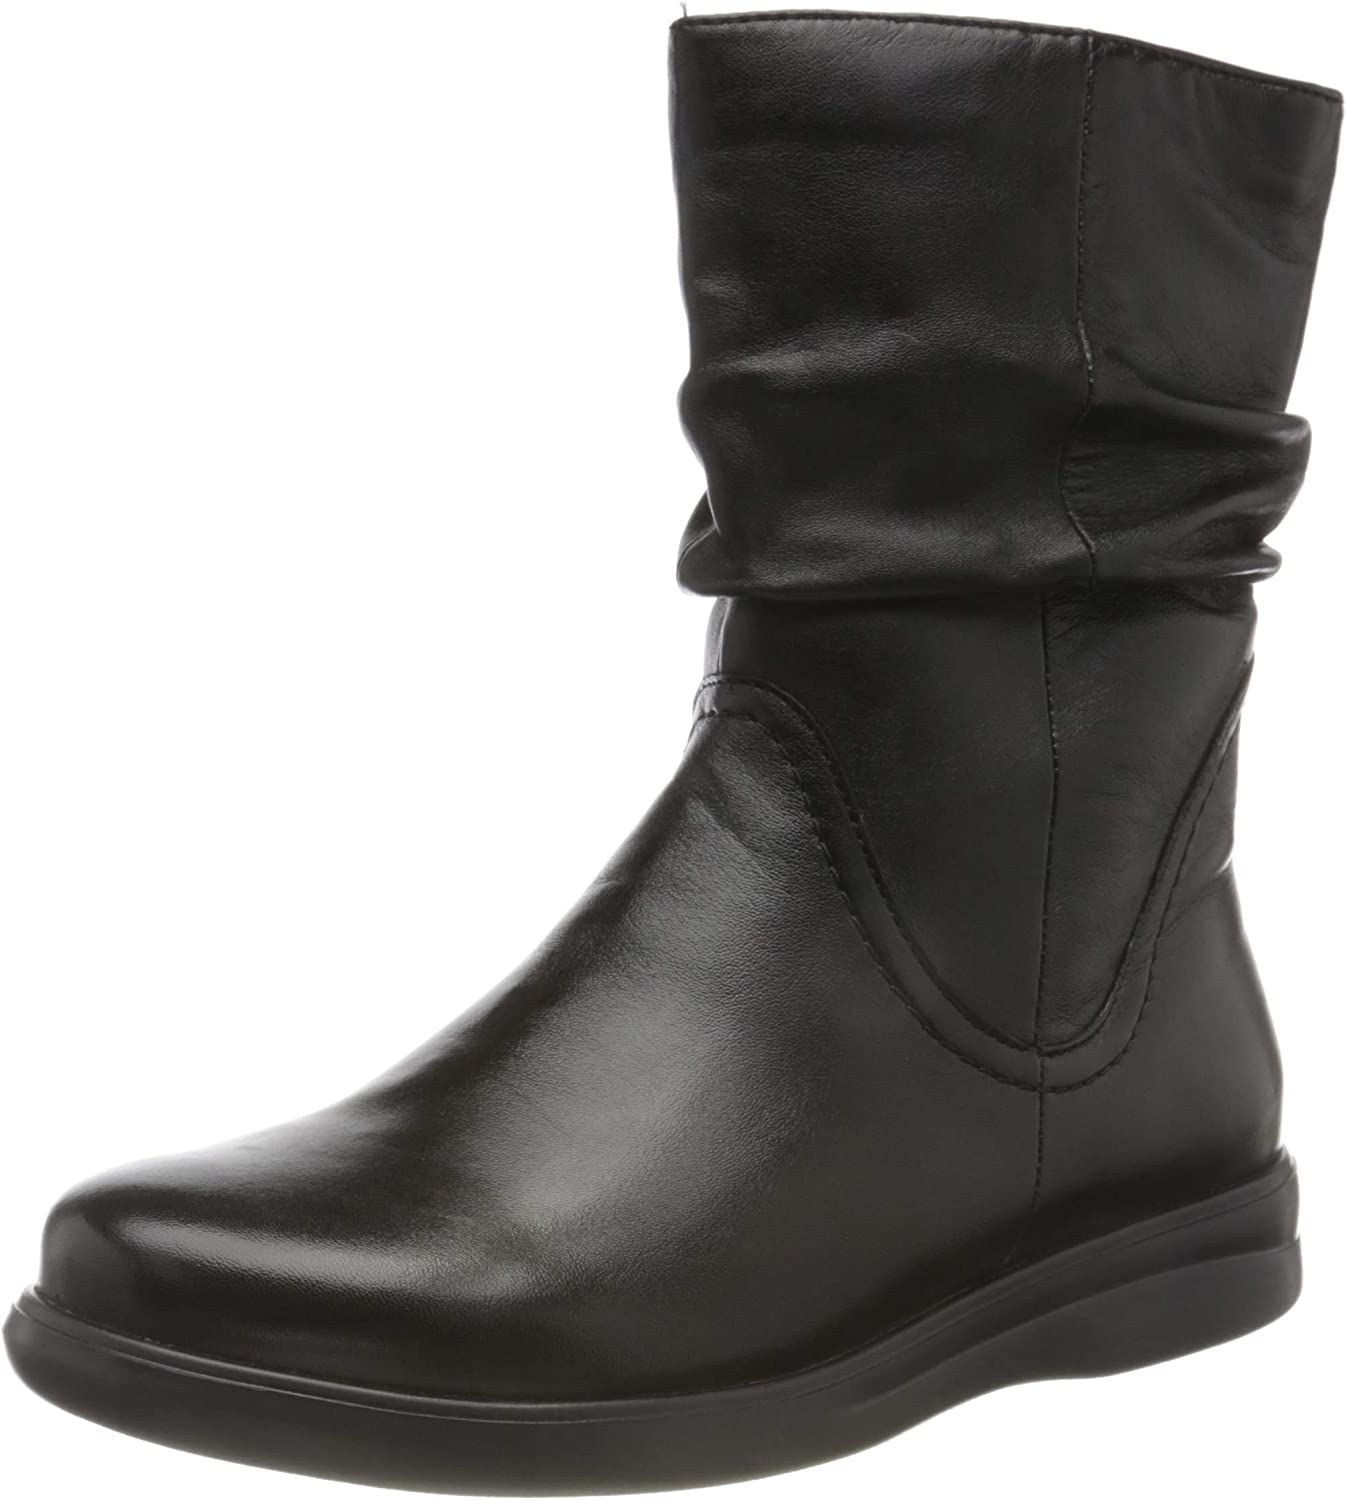 Latest item Caprice Women's 9-9-25444-25 040 Boot favorite Ankle